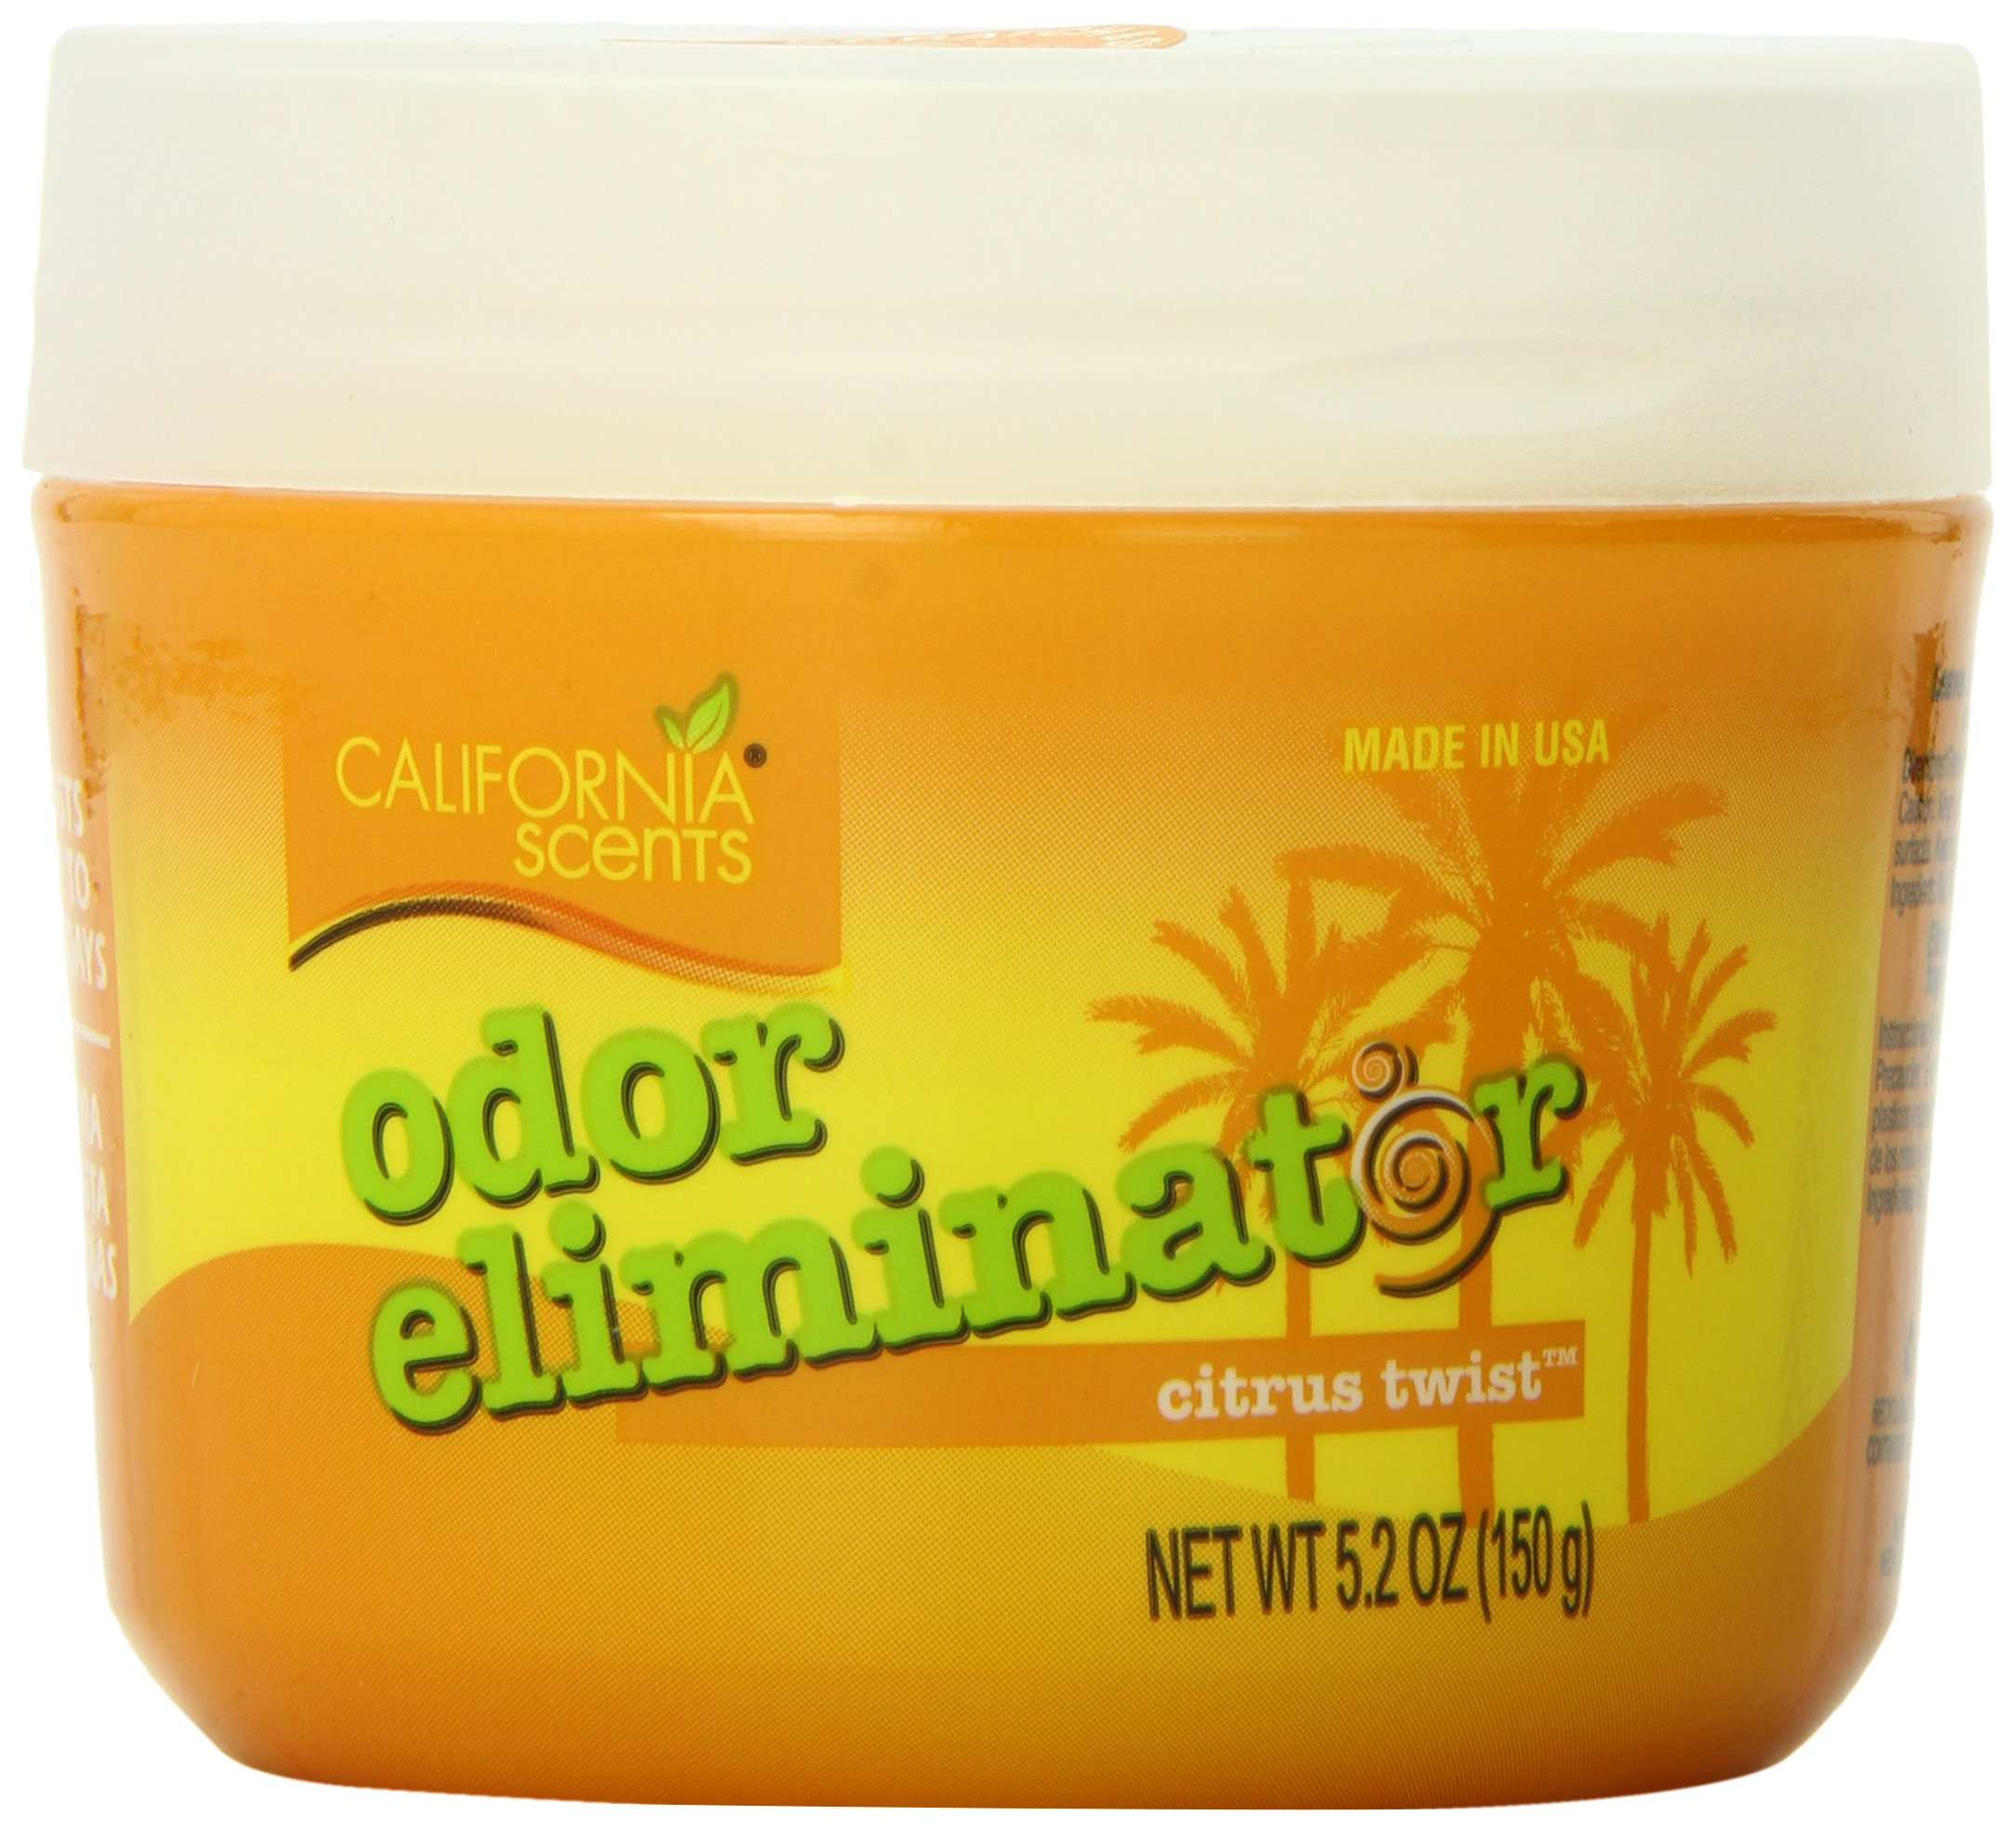 California Scents Odor Eliminator, Citrus Twist, 5.2-Ounce Jars (Pack of 12)